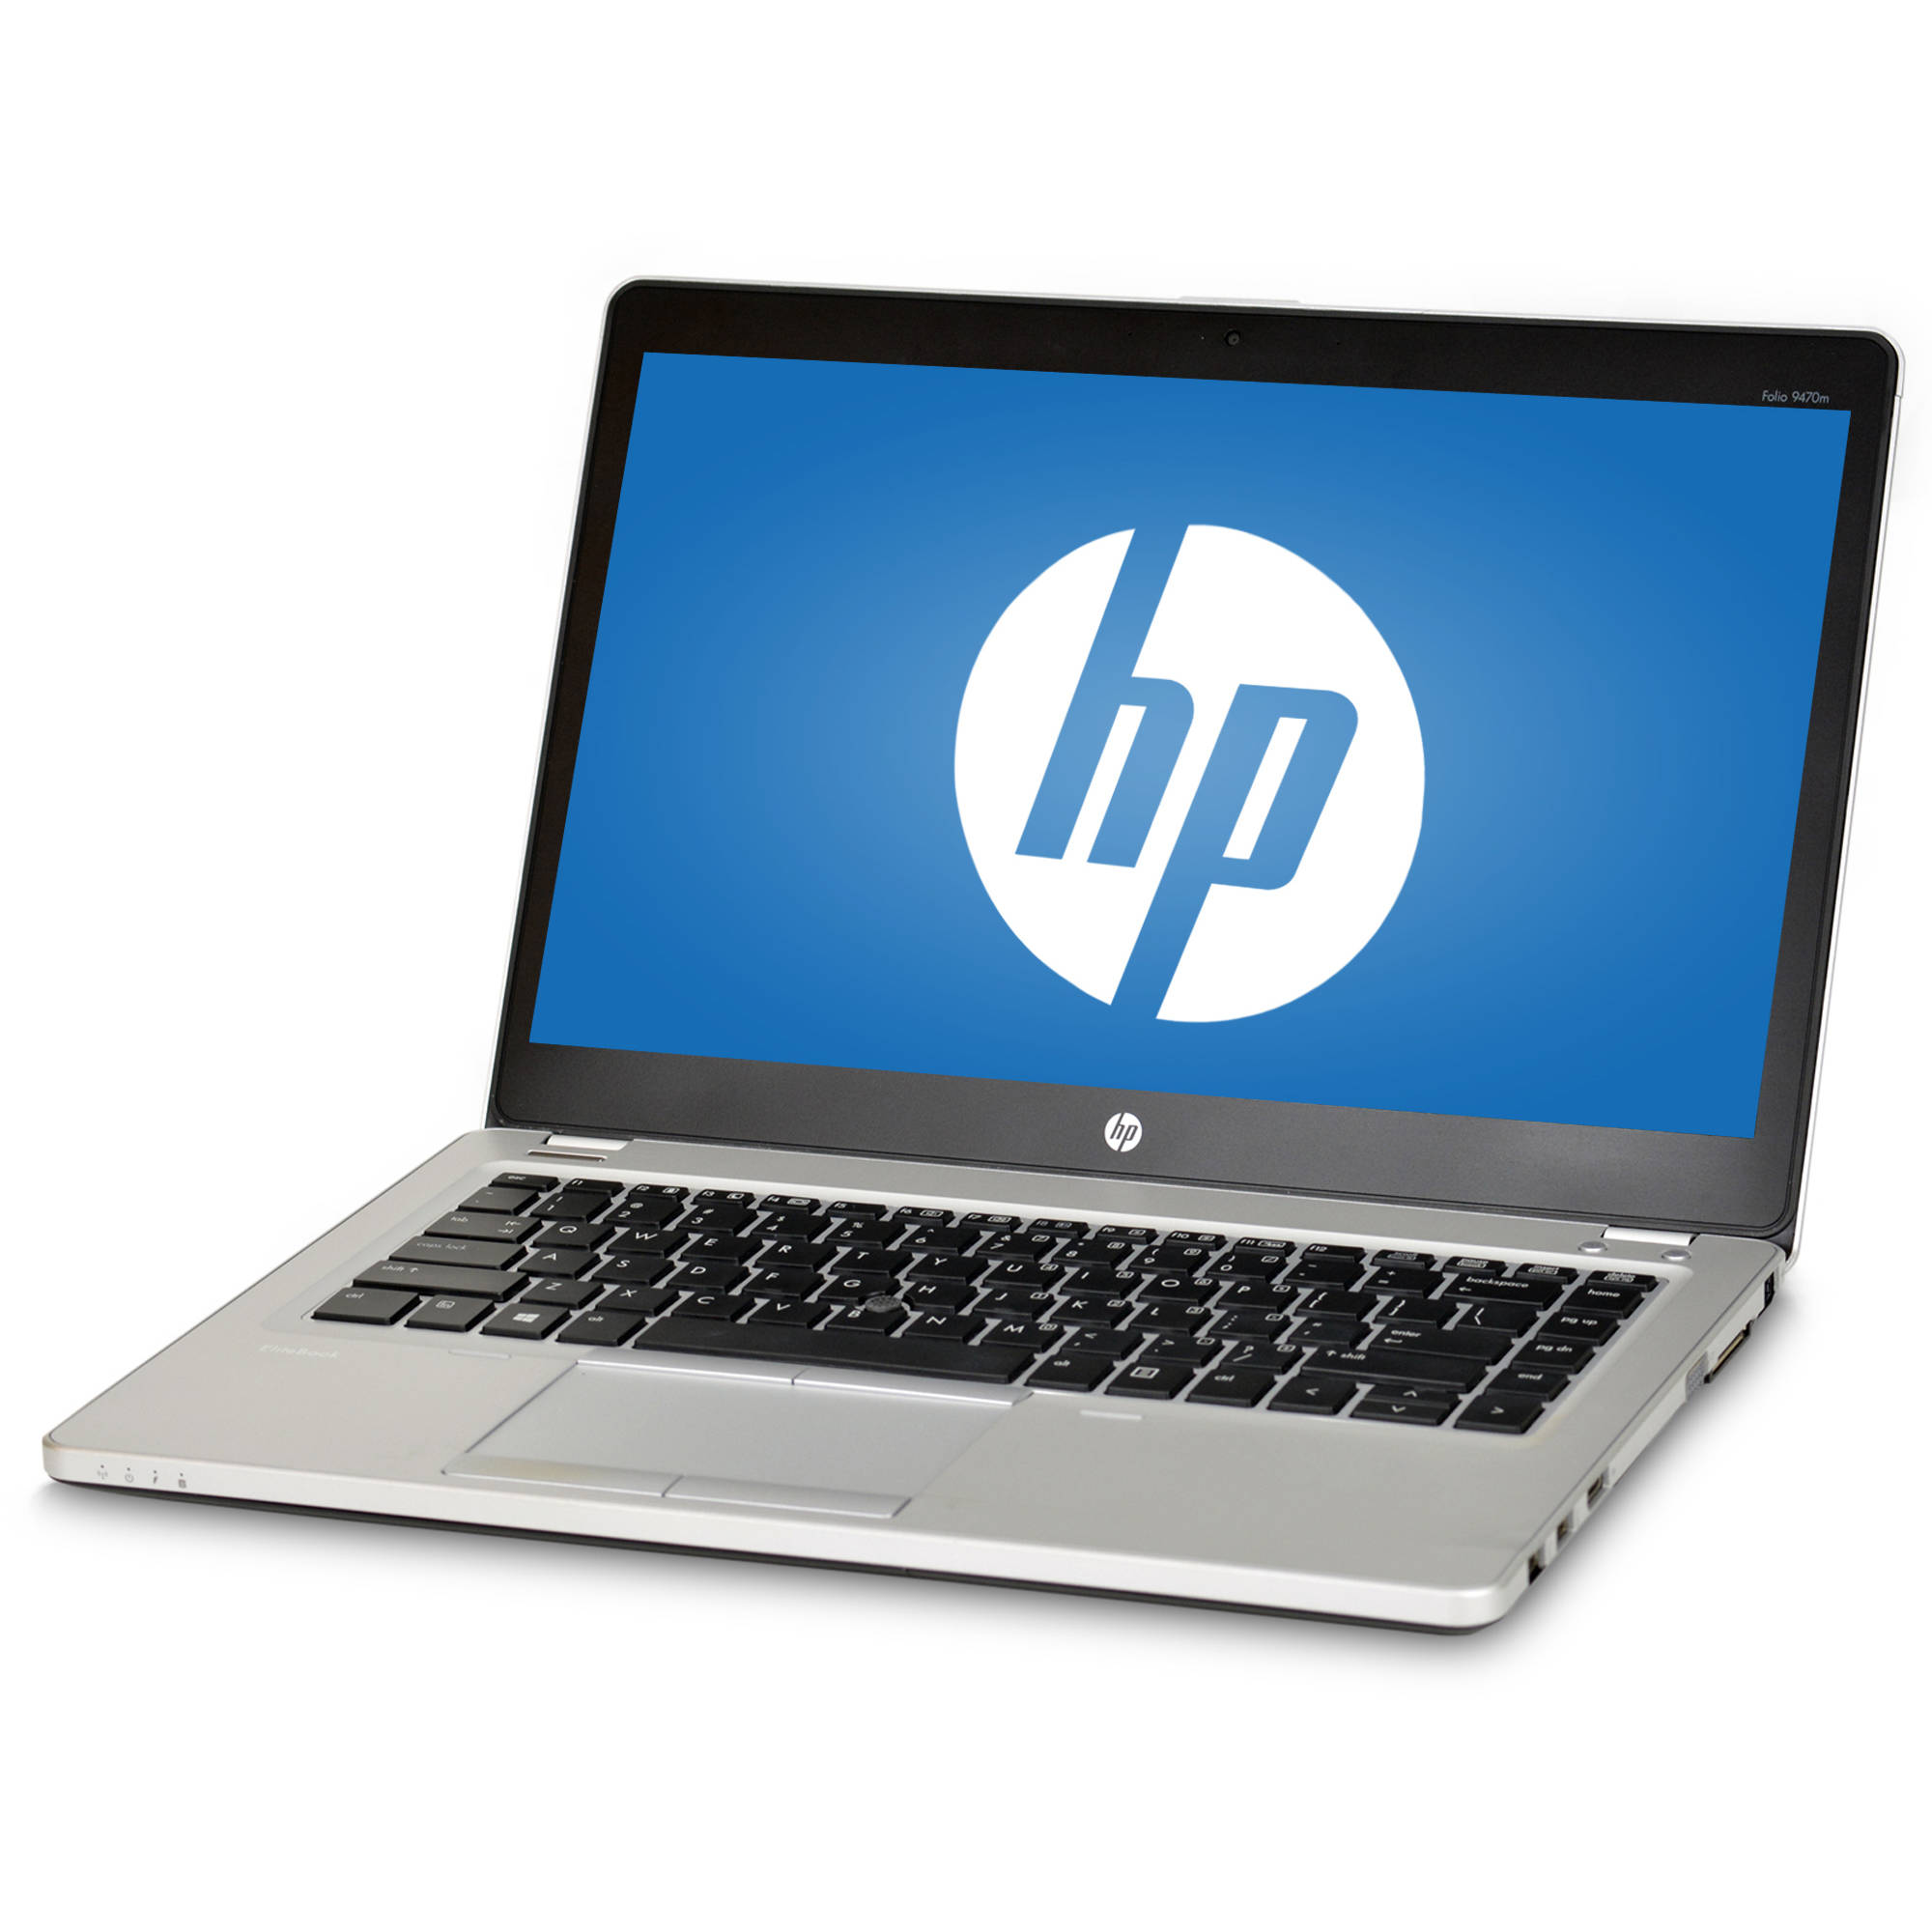 "Factory Refurbished HP Folio 9470M 14"" Laptop, Windows 10 Pro, Intel Core i5-3437U Processor, 8GB RAM, 500GB Hard Drive"